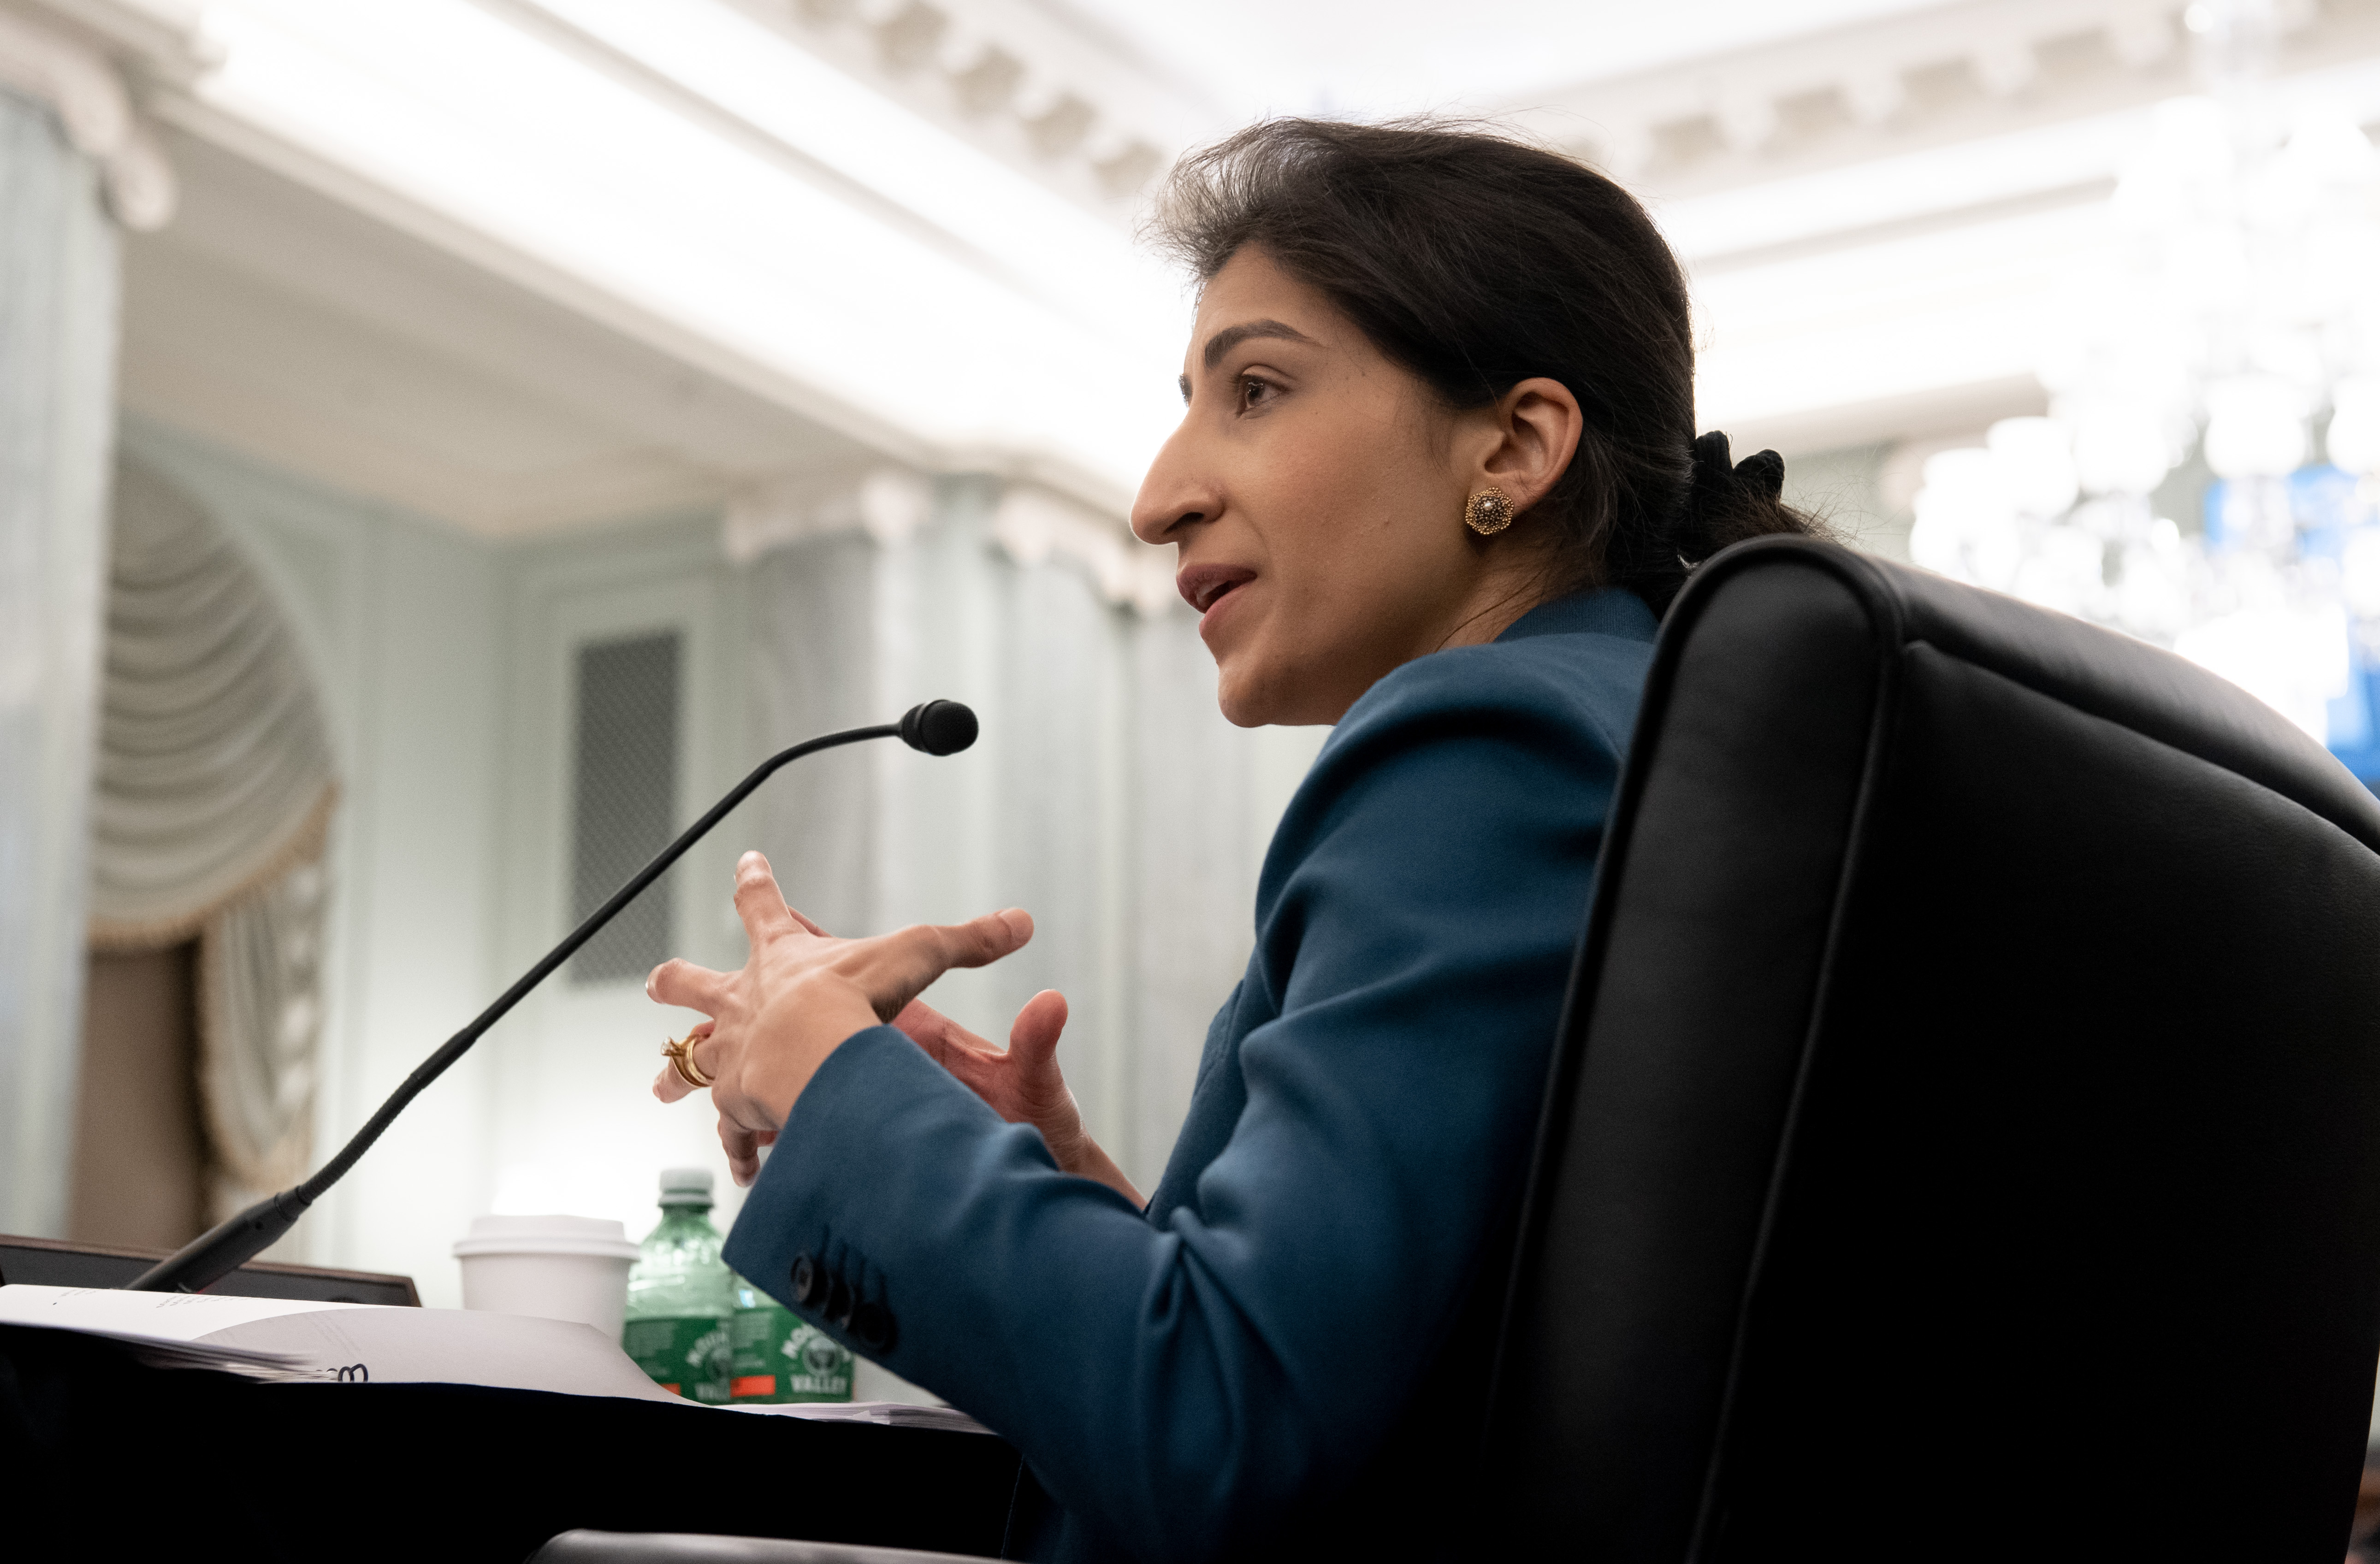 Lina Khan speaking into a microphone at a congressional hearing.